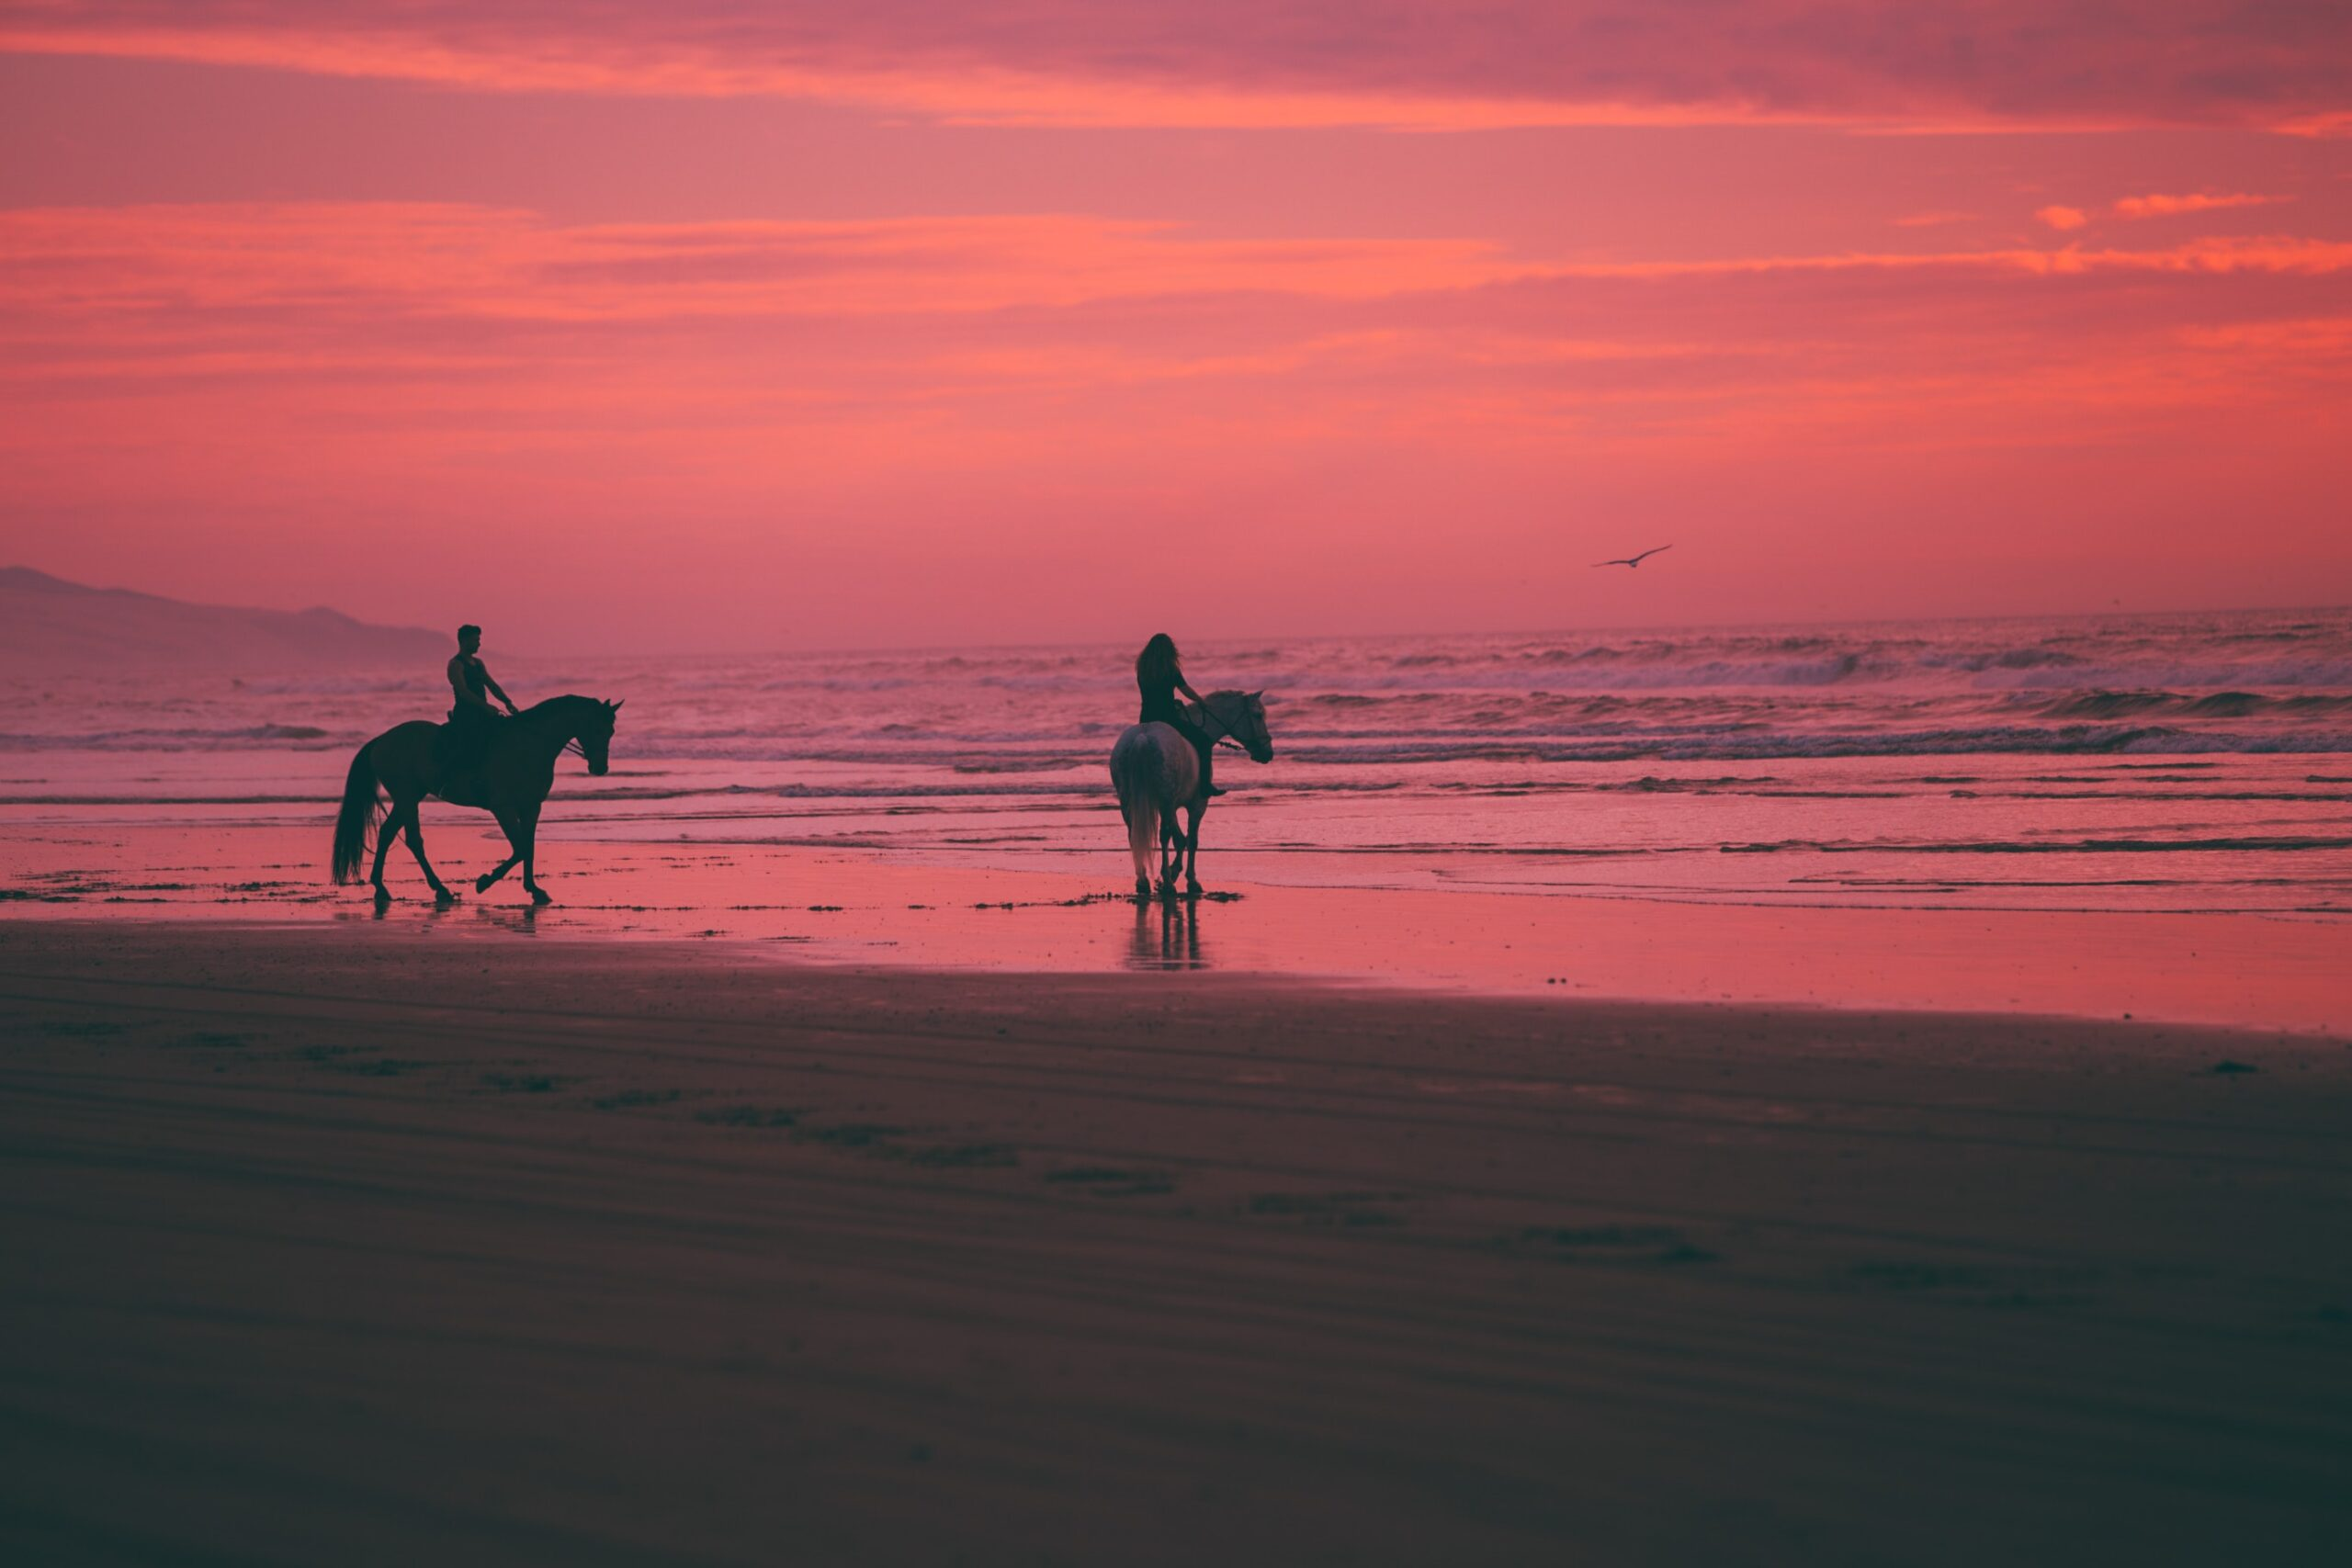 sunset on the beach with horses